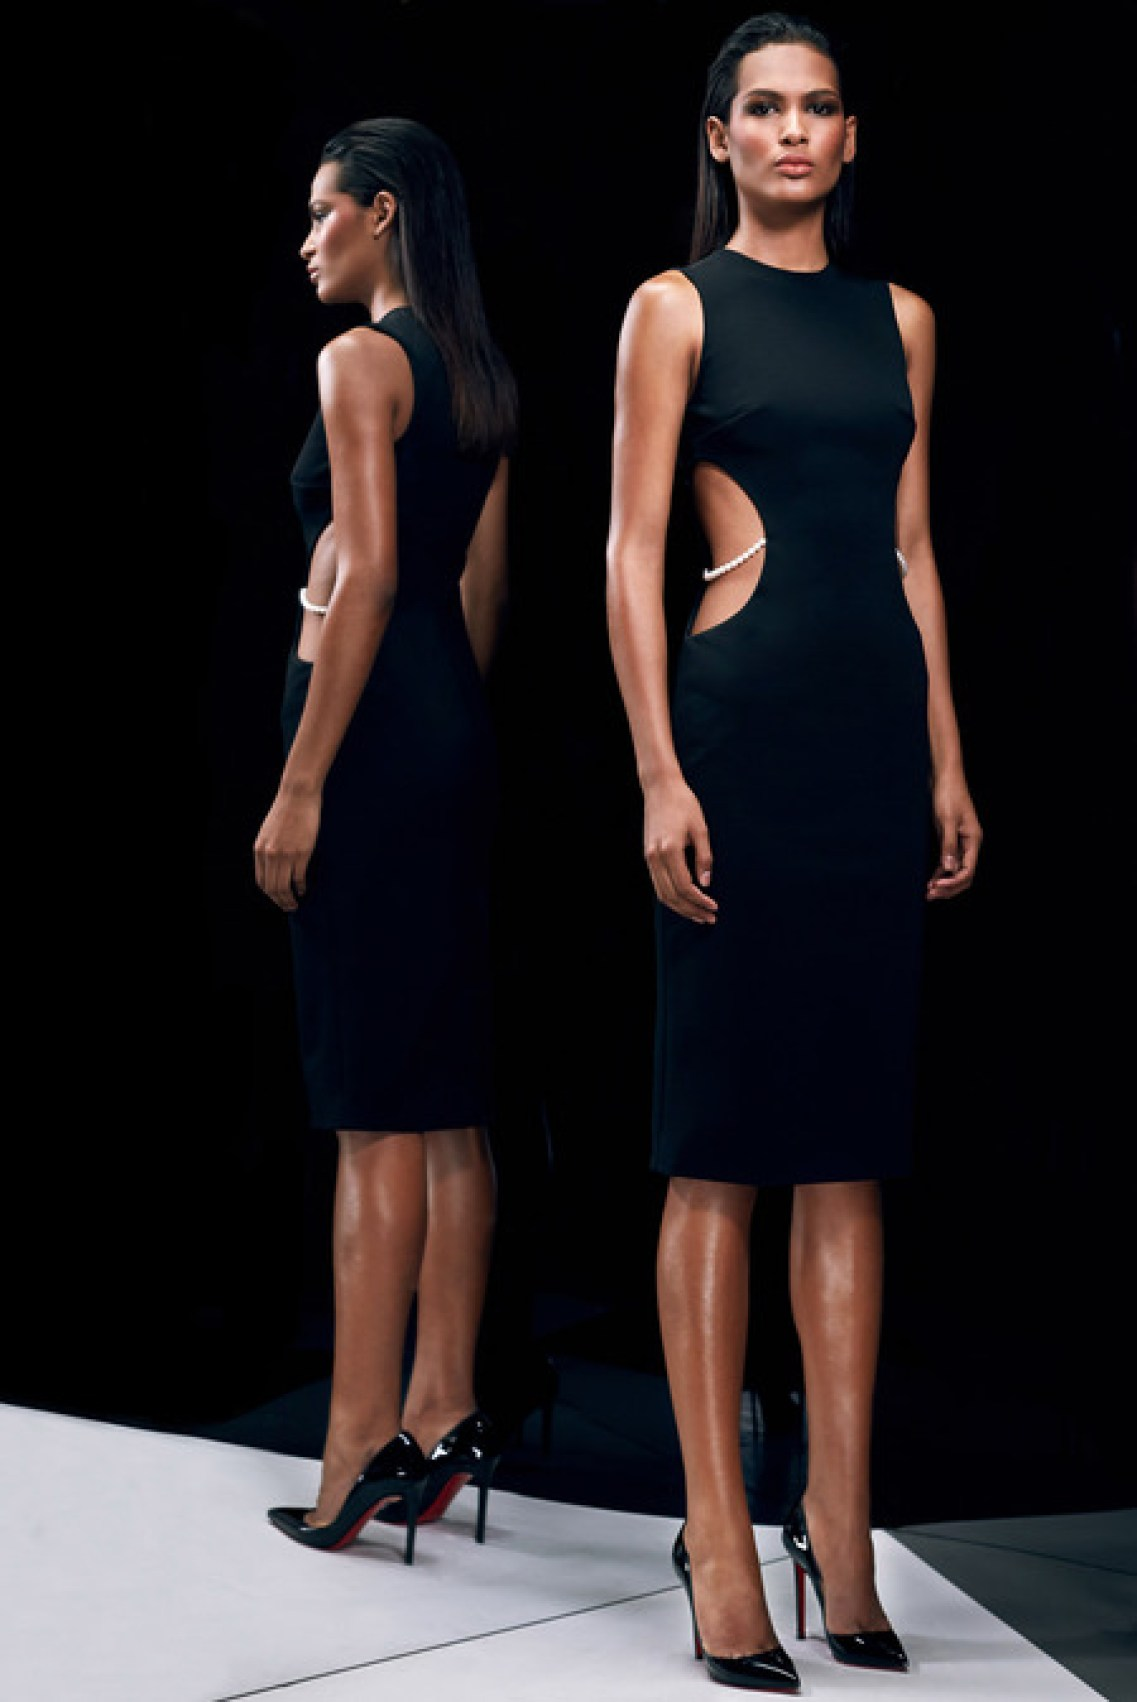 Cushnie-et-Ochs-pre-fall-2014_latest-designer-collections_regal-fashion-trends_delicate-style_high-end-fashion-bloggers-australia_luxury-bloggers-australia_top-fashion-bloggers-australia_best-fashion-editorials_2014_black-dress-with-pearls_trendy-cocktail-dresses